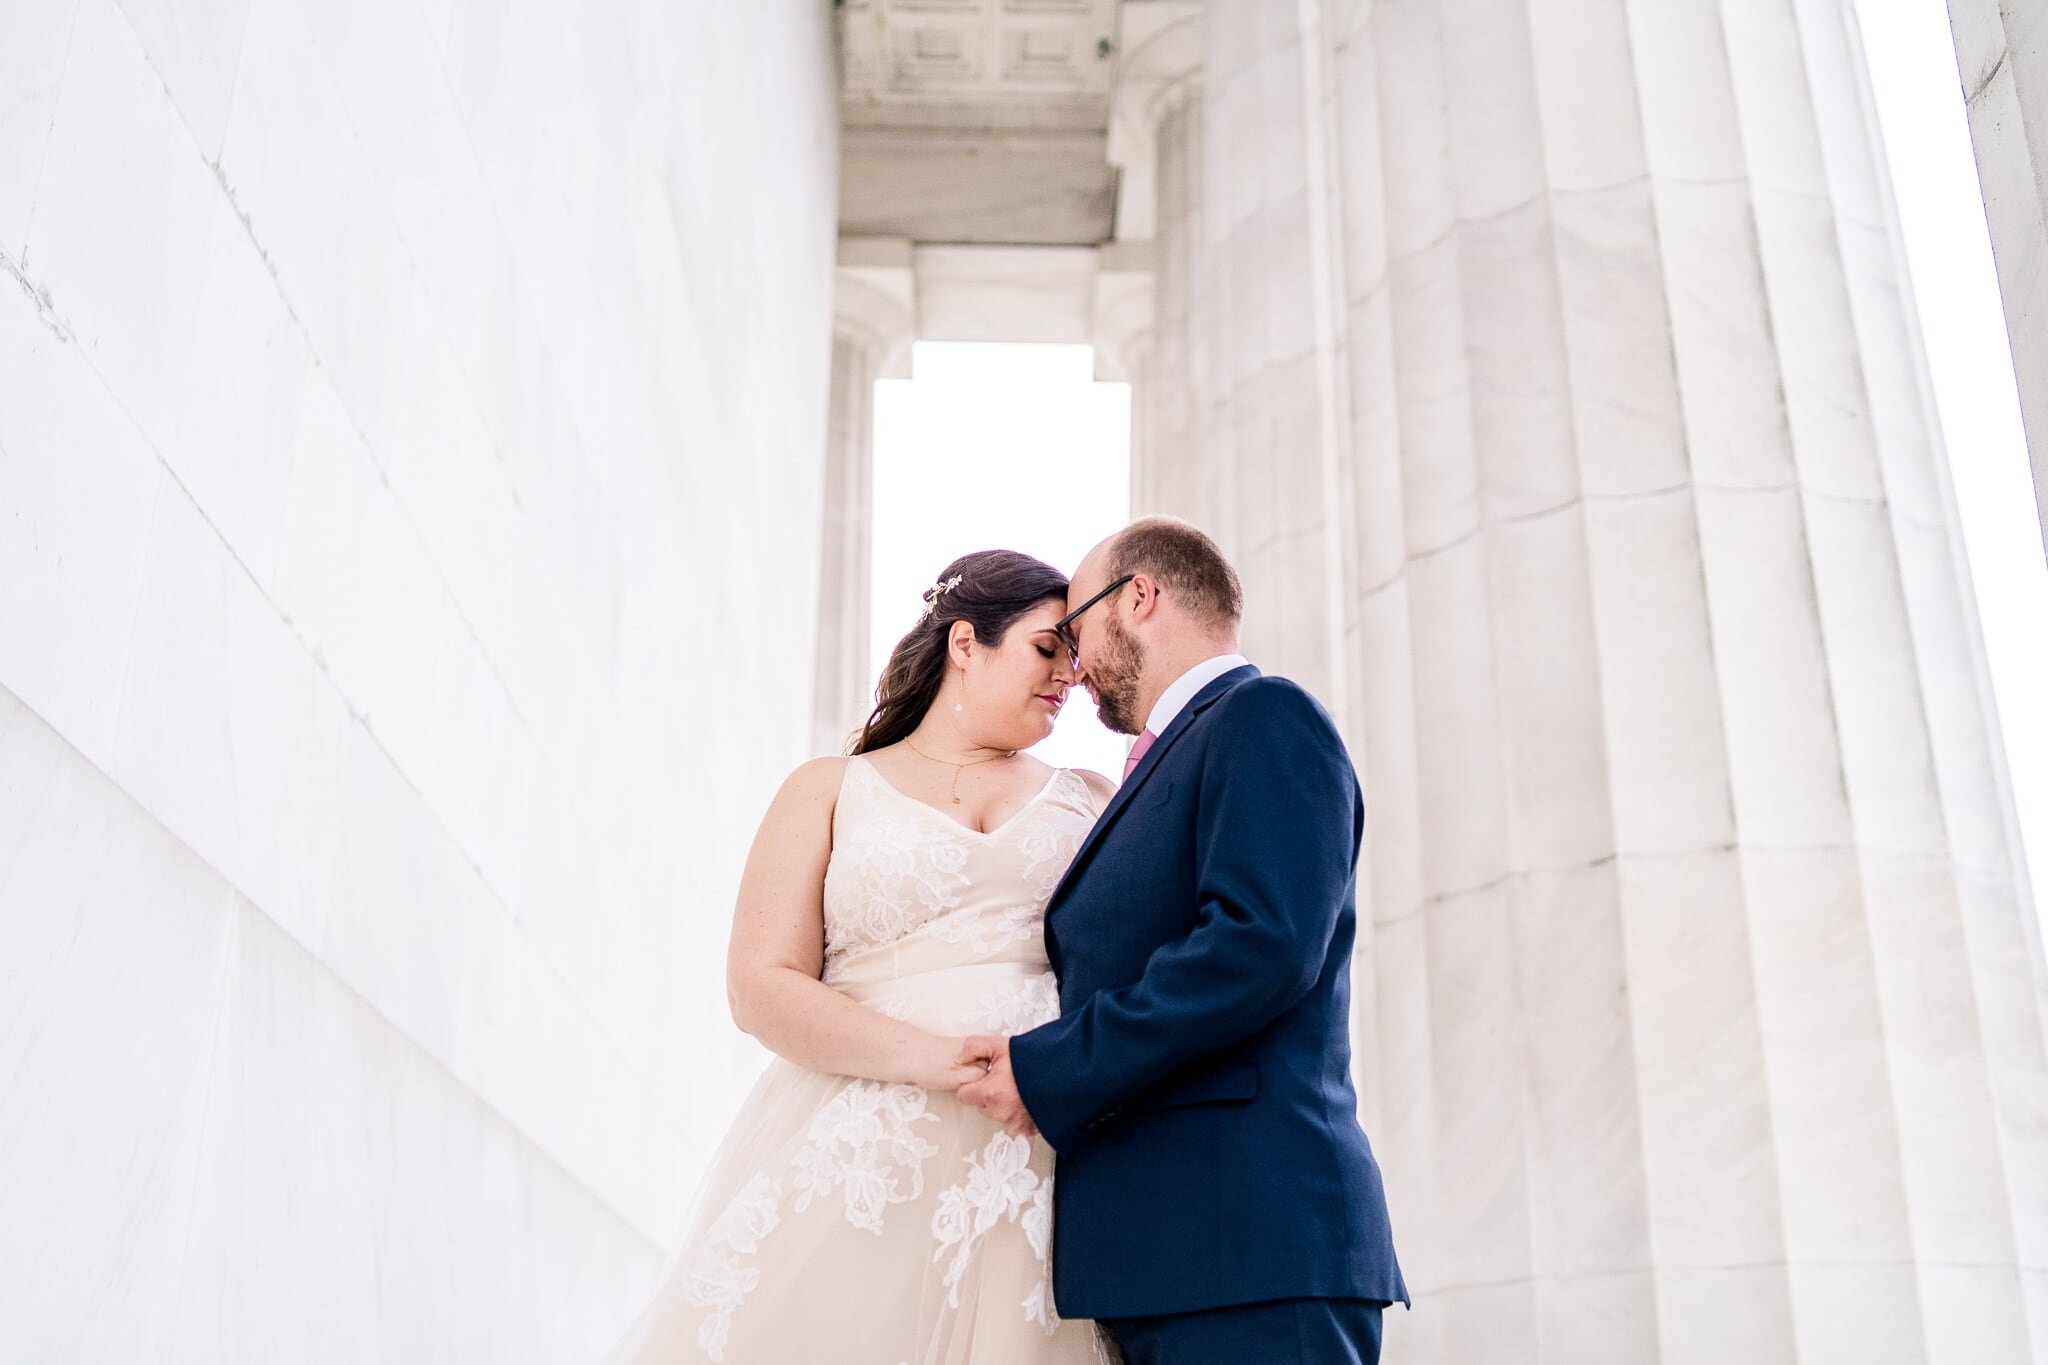 A bride and groom stand together with foreheads together holding hands on their wedding day at the Lincoln Memorial in Washington, DC